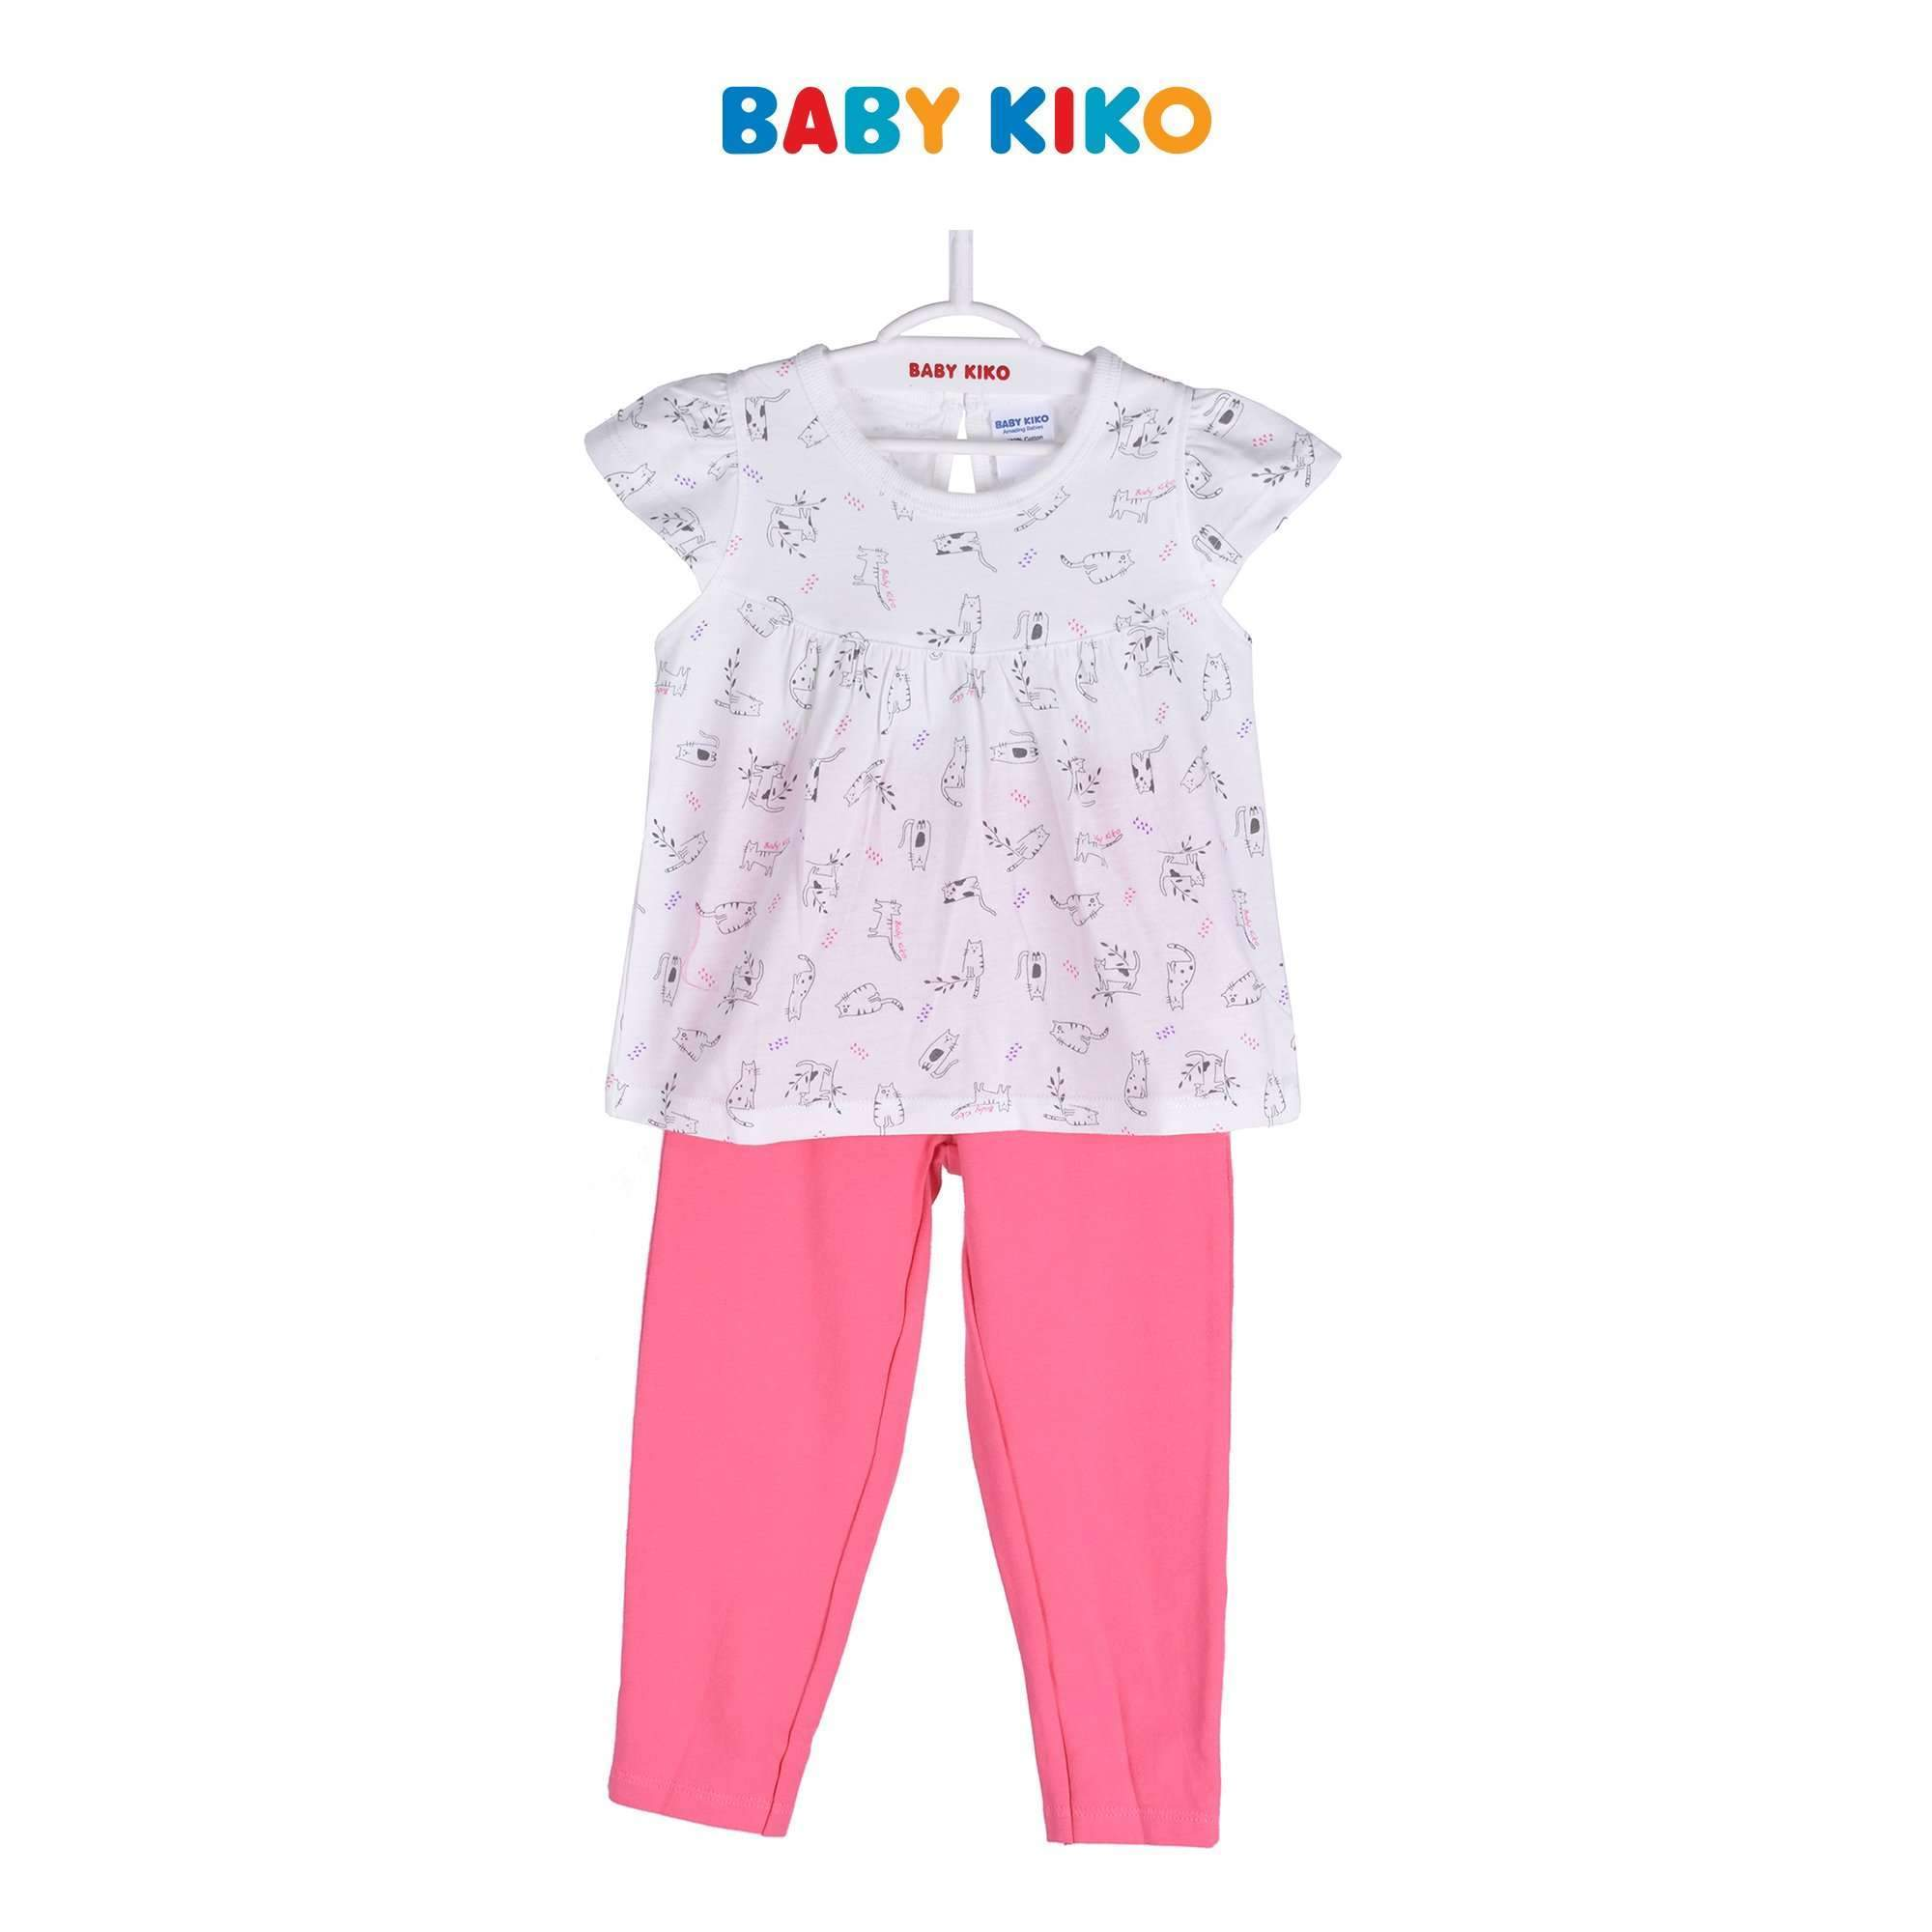 Baby KIKO Girl Short Sleeve Legging Suit - Pink 325111-422 : Buy Baby KIKO online at CMG.MY